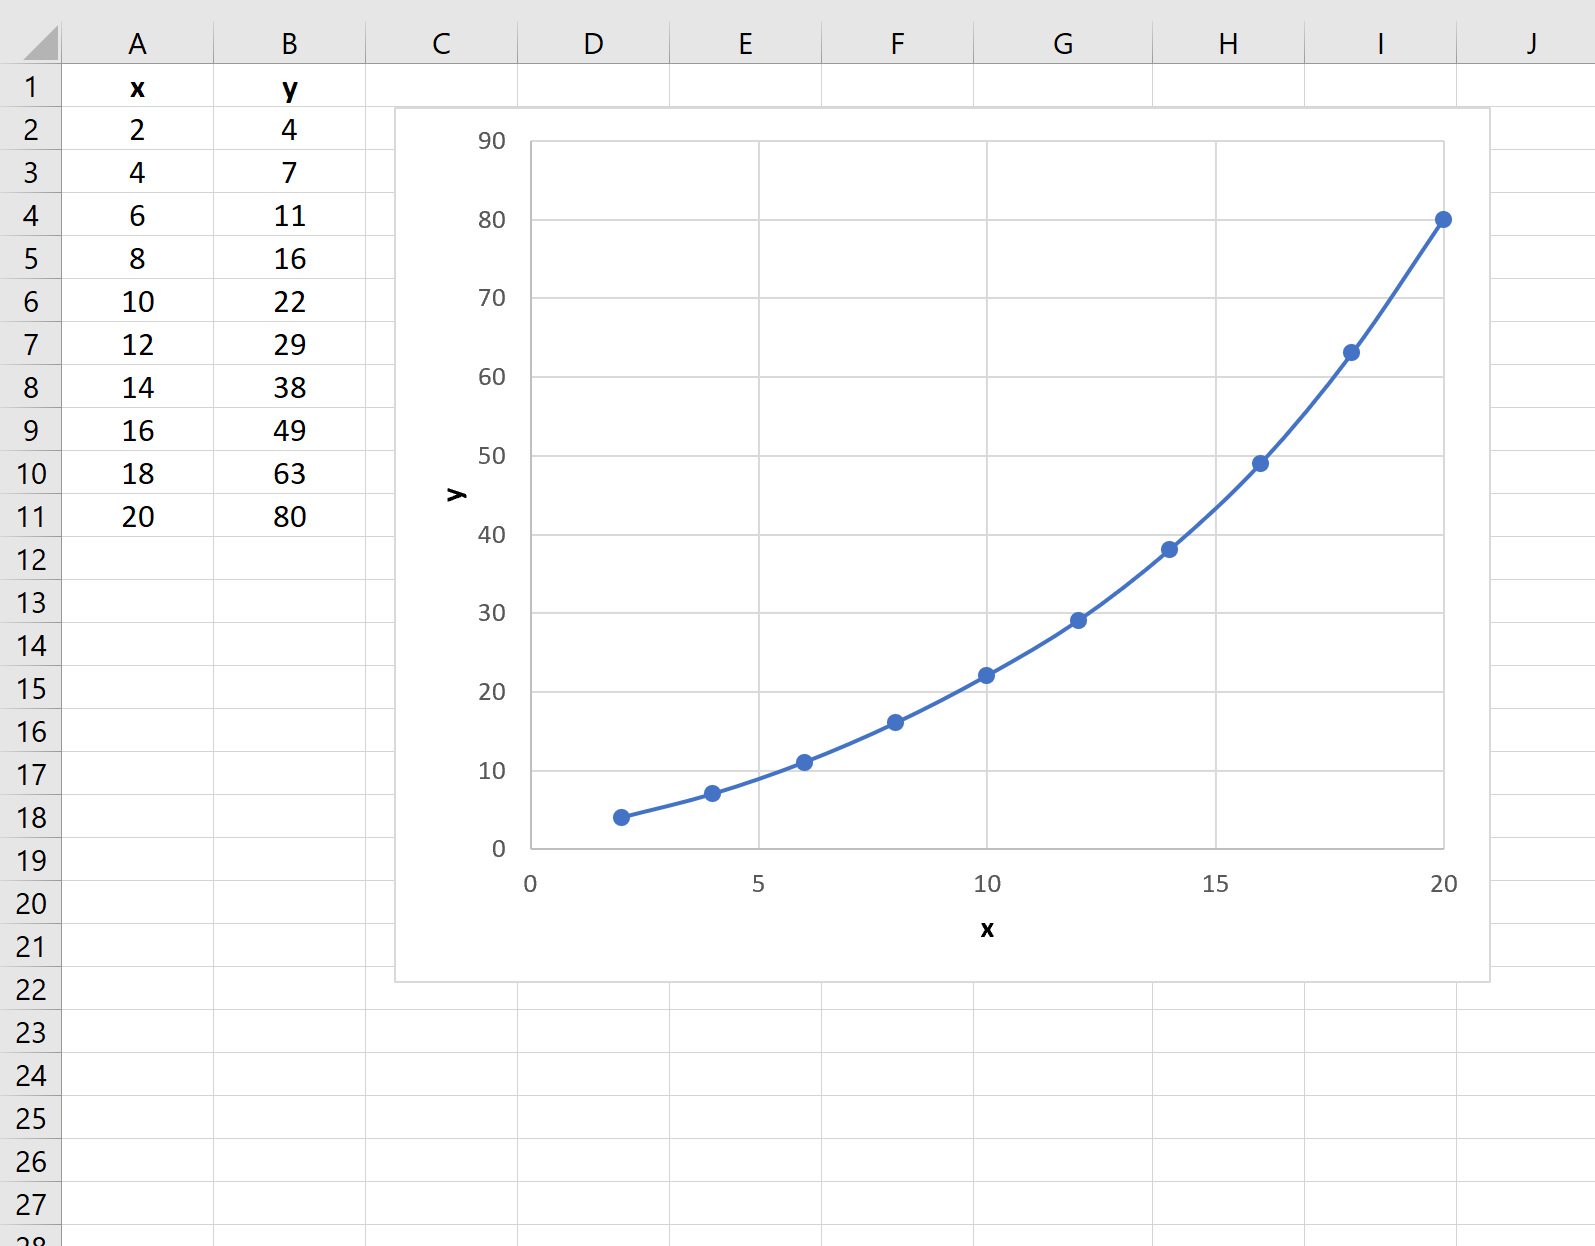 Linear interpolation in Excel